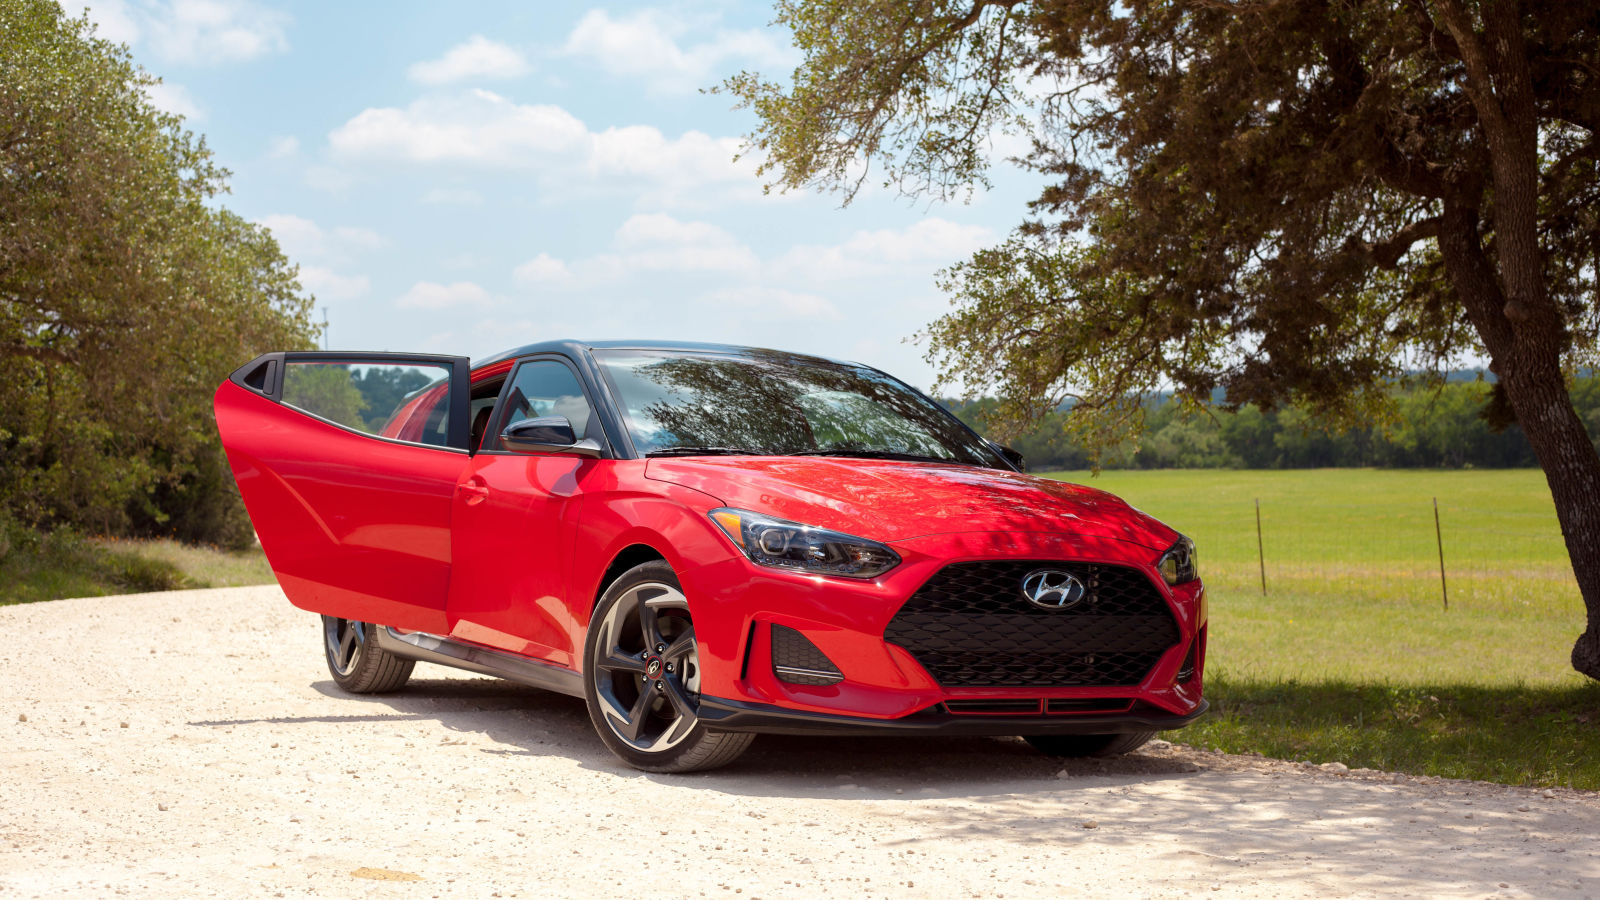 2019 Hyundai Veloster promises to deliver a rewarding drive